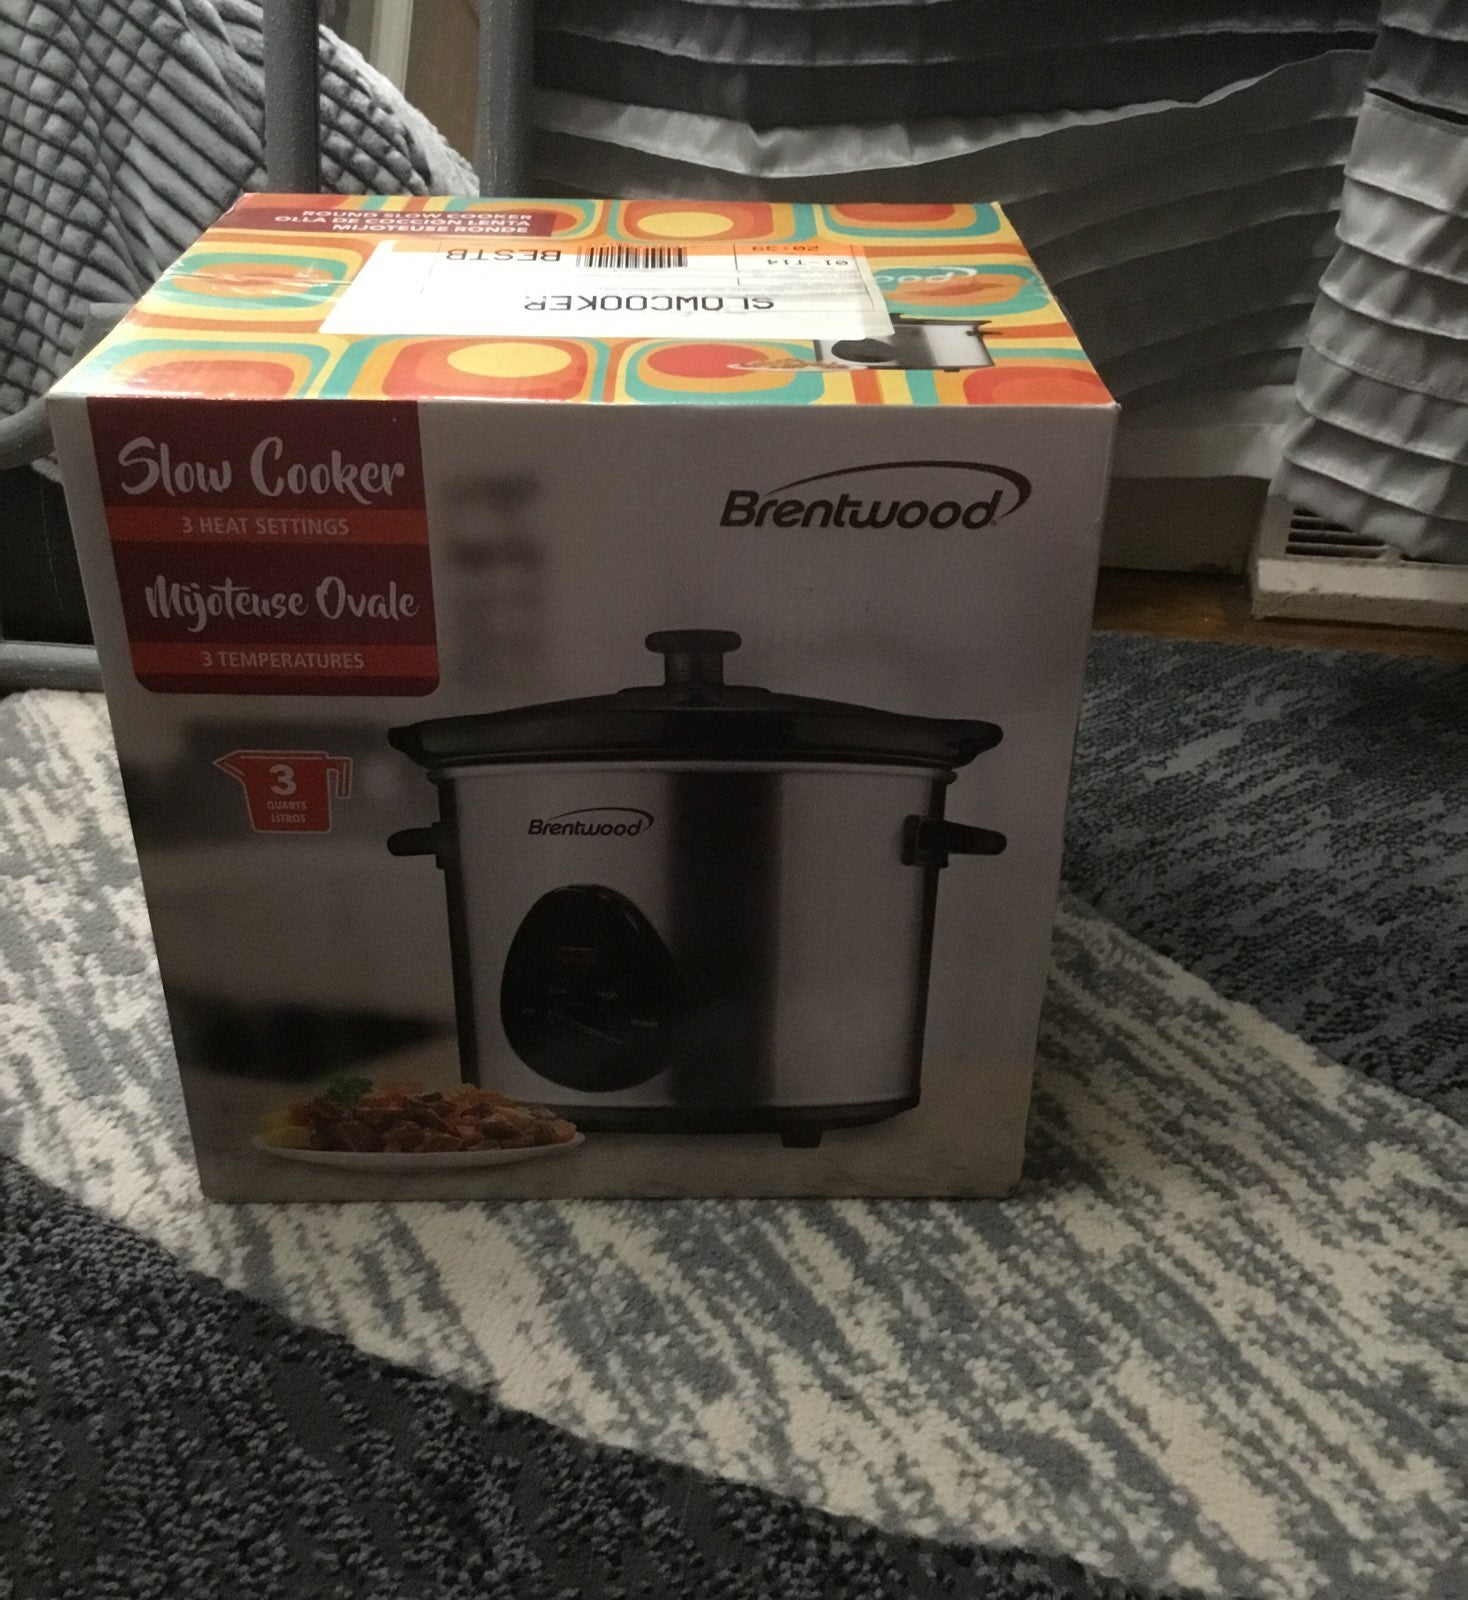 Brentwood 3q slow cooker new